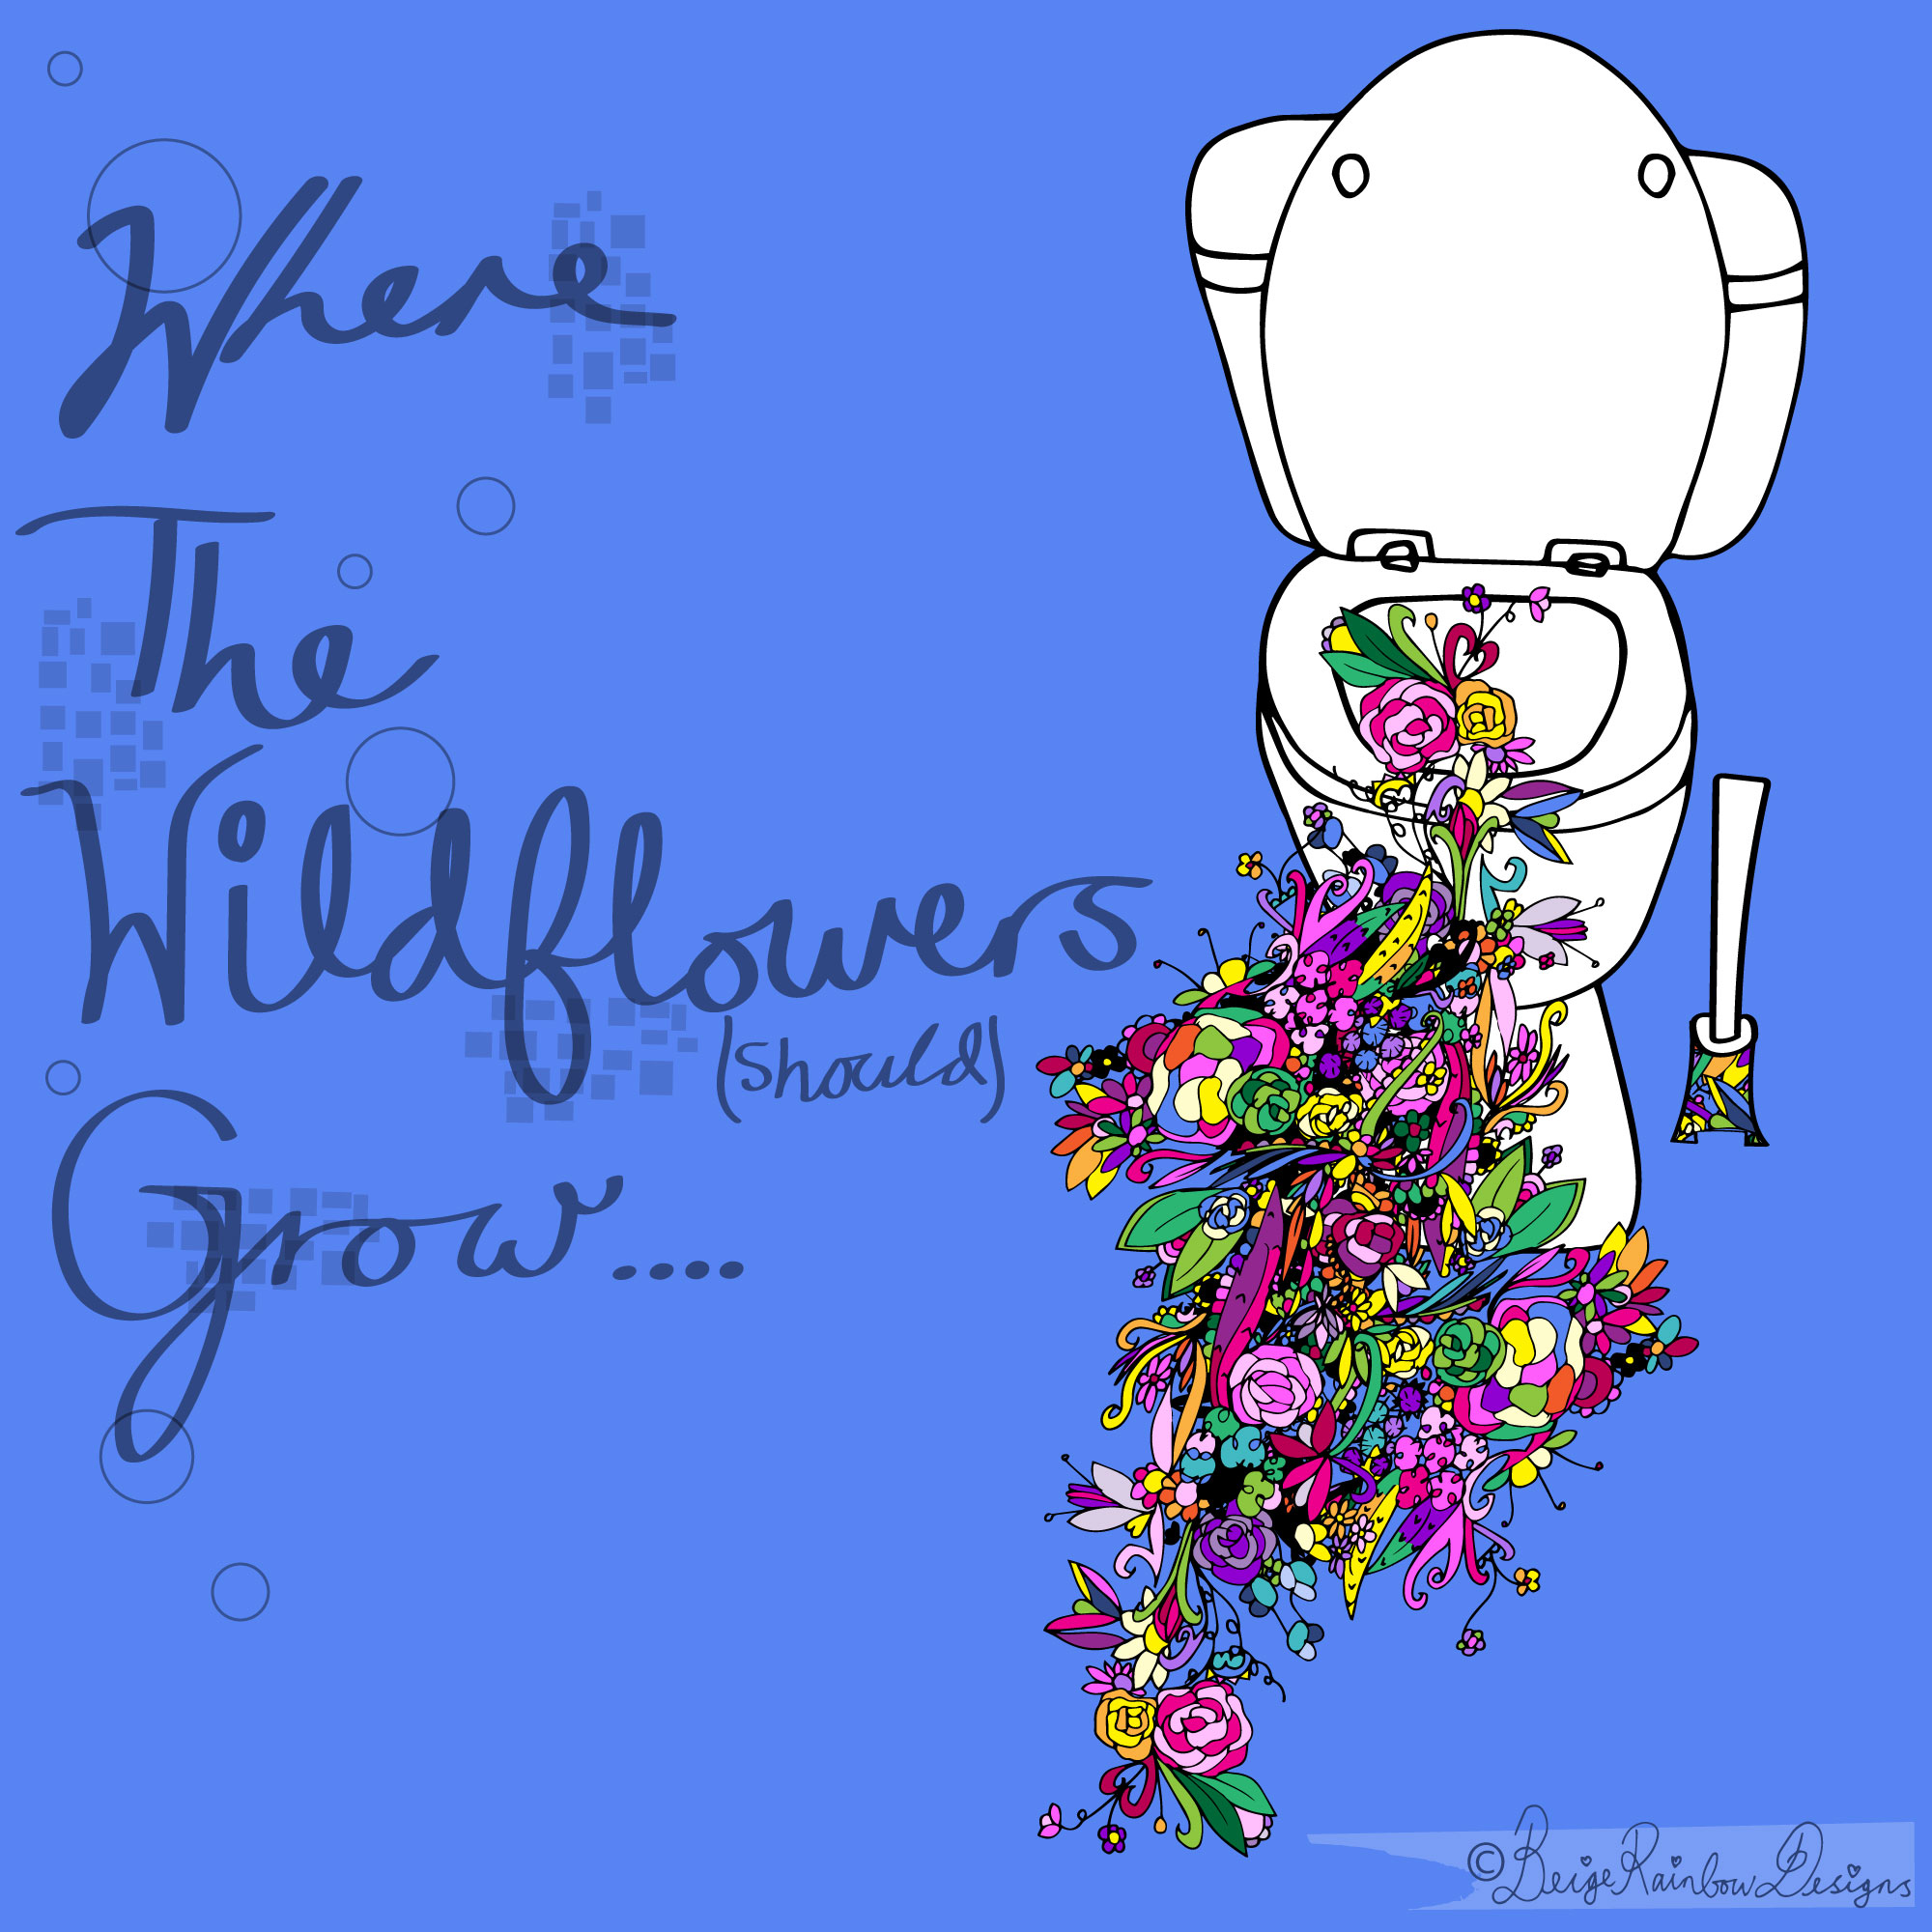 Where The Wildflowers (should) Grow - The Loo